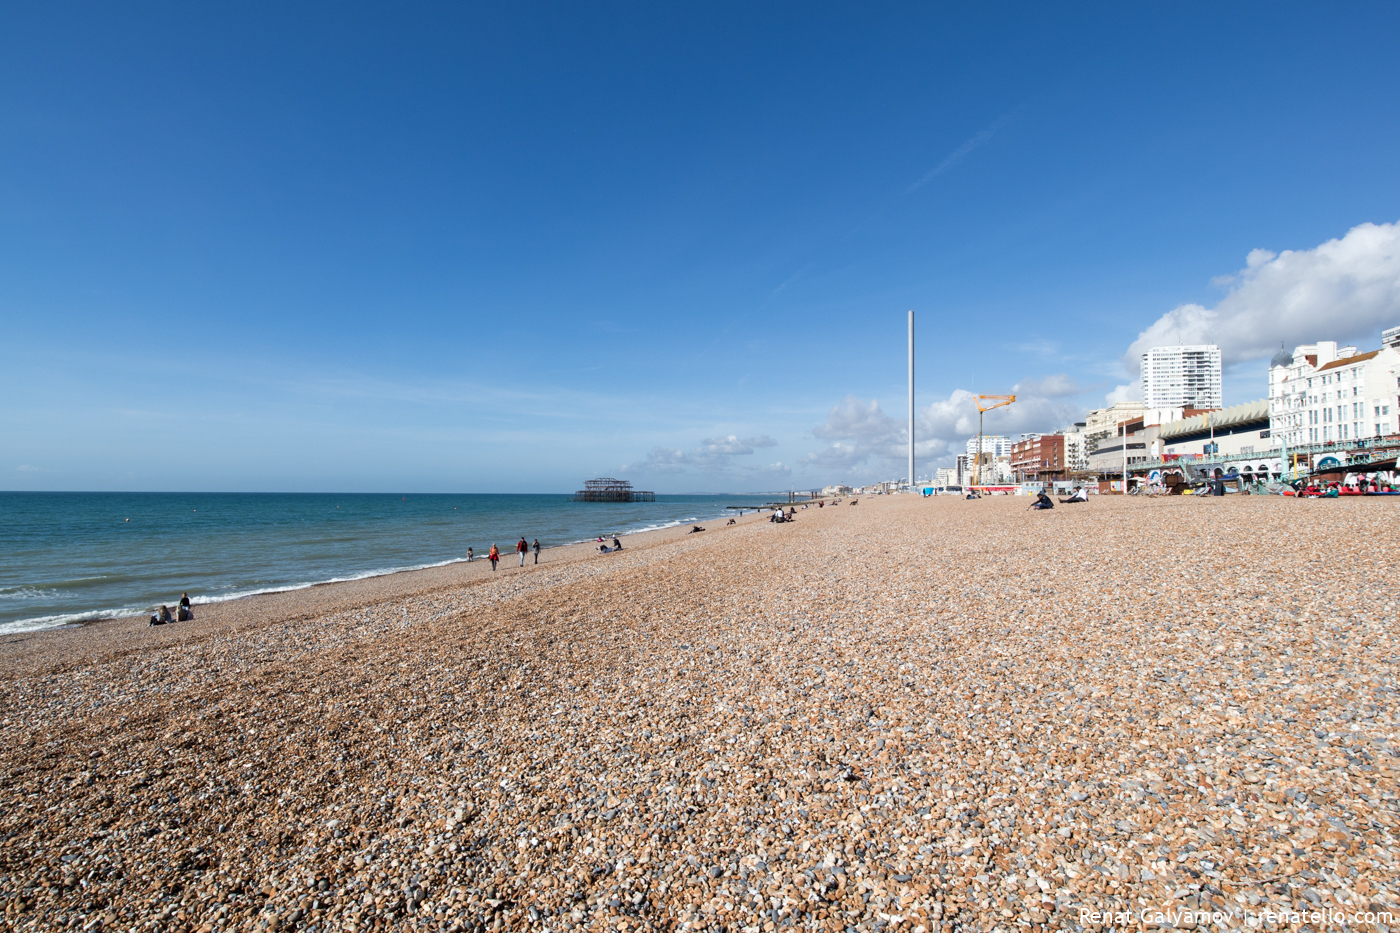 Brighton beach and seafront.